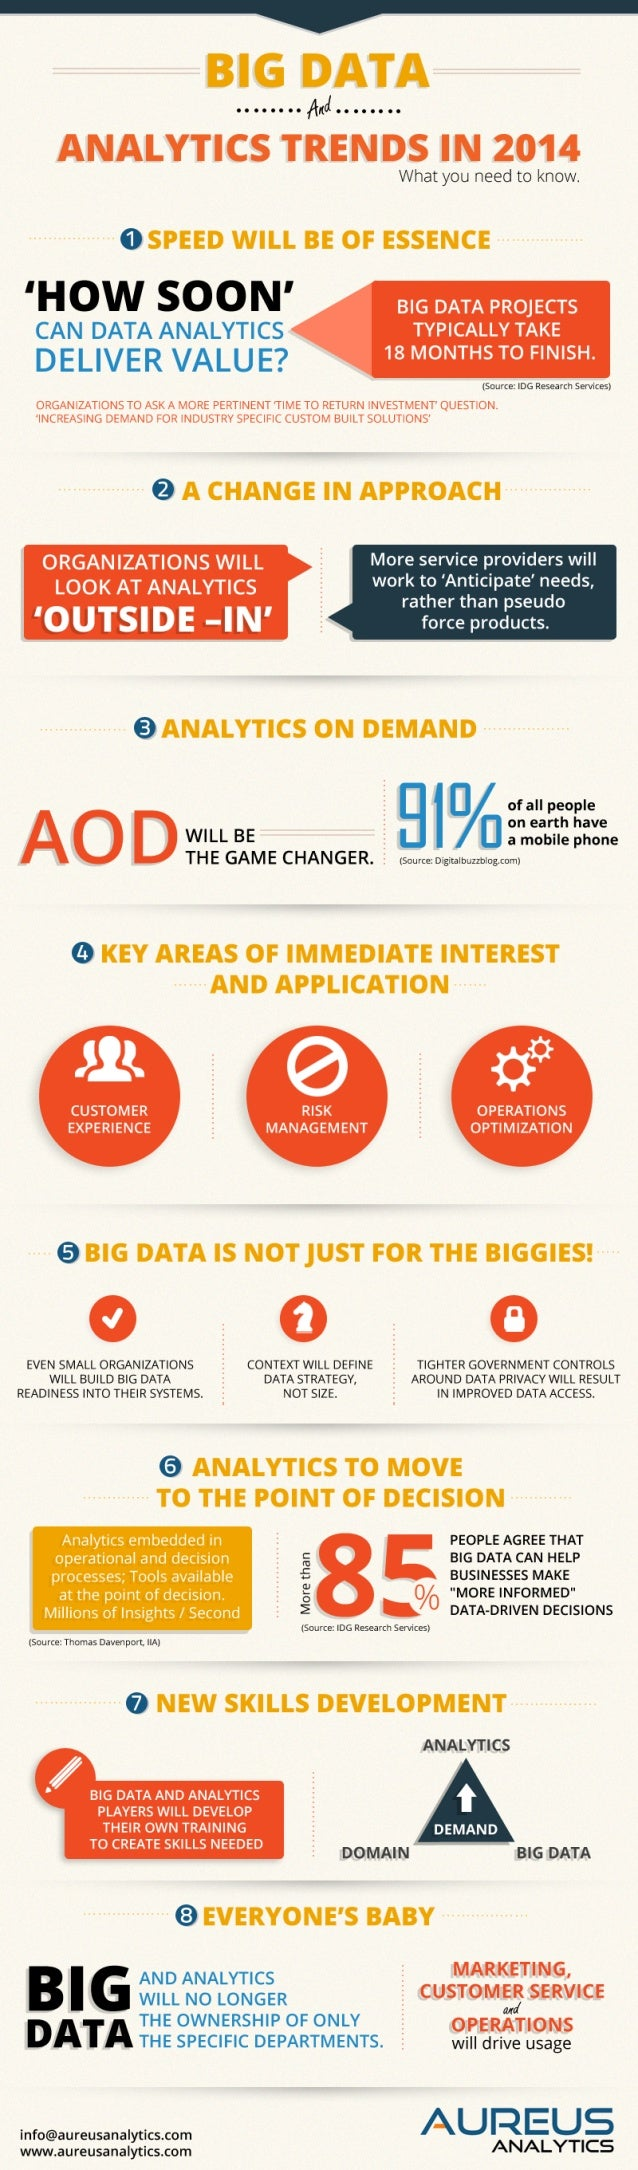 Big Data and Analytics Trends in 2014